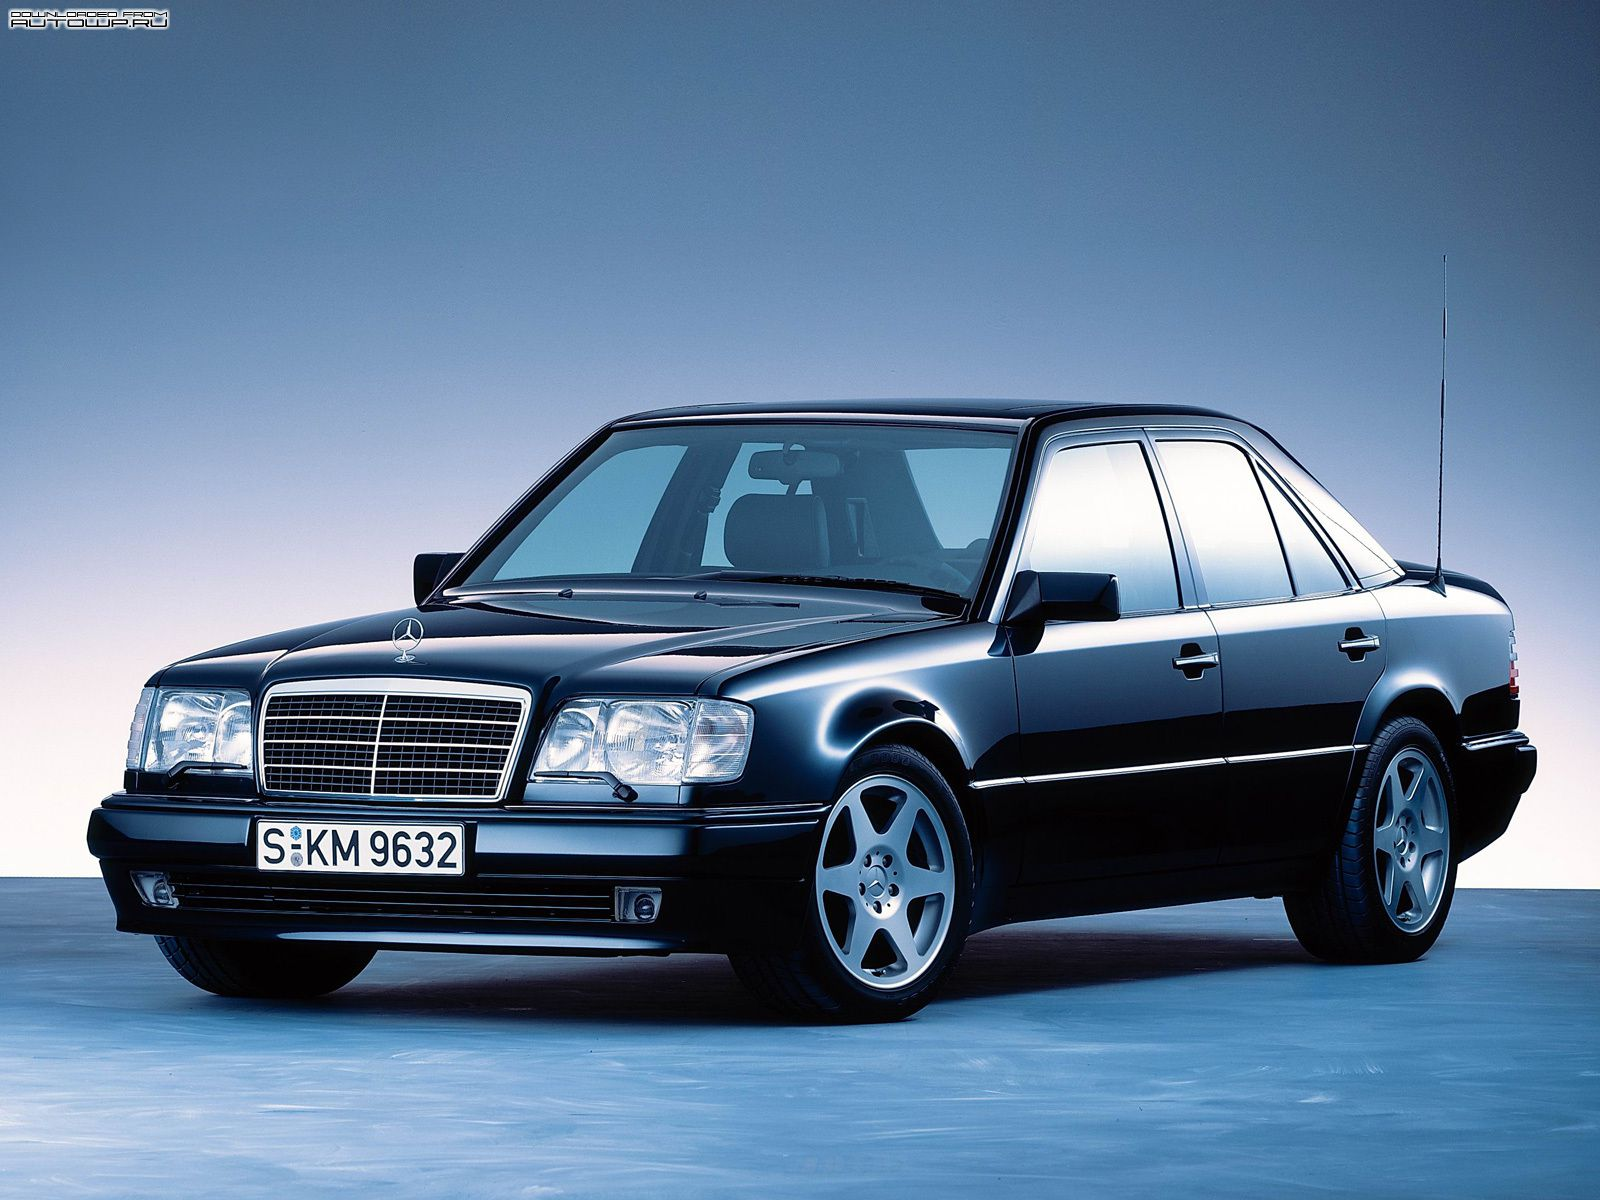 Coches de lujo taringa for All types of mercedes benz cars